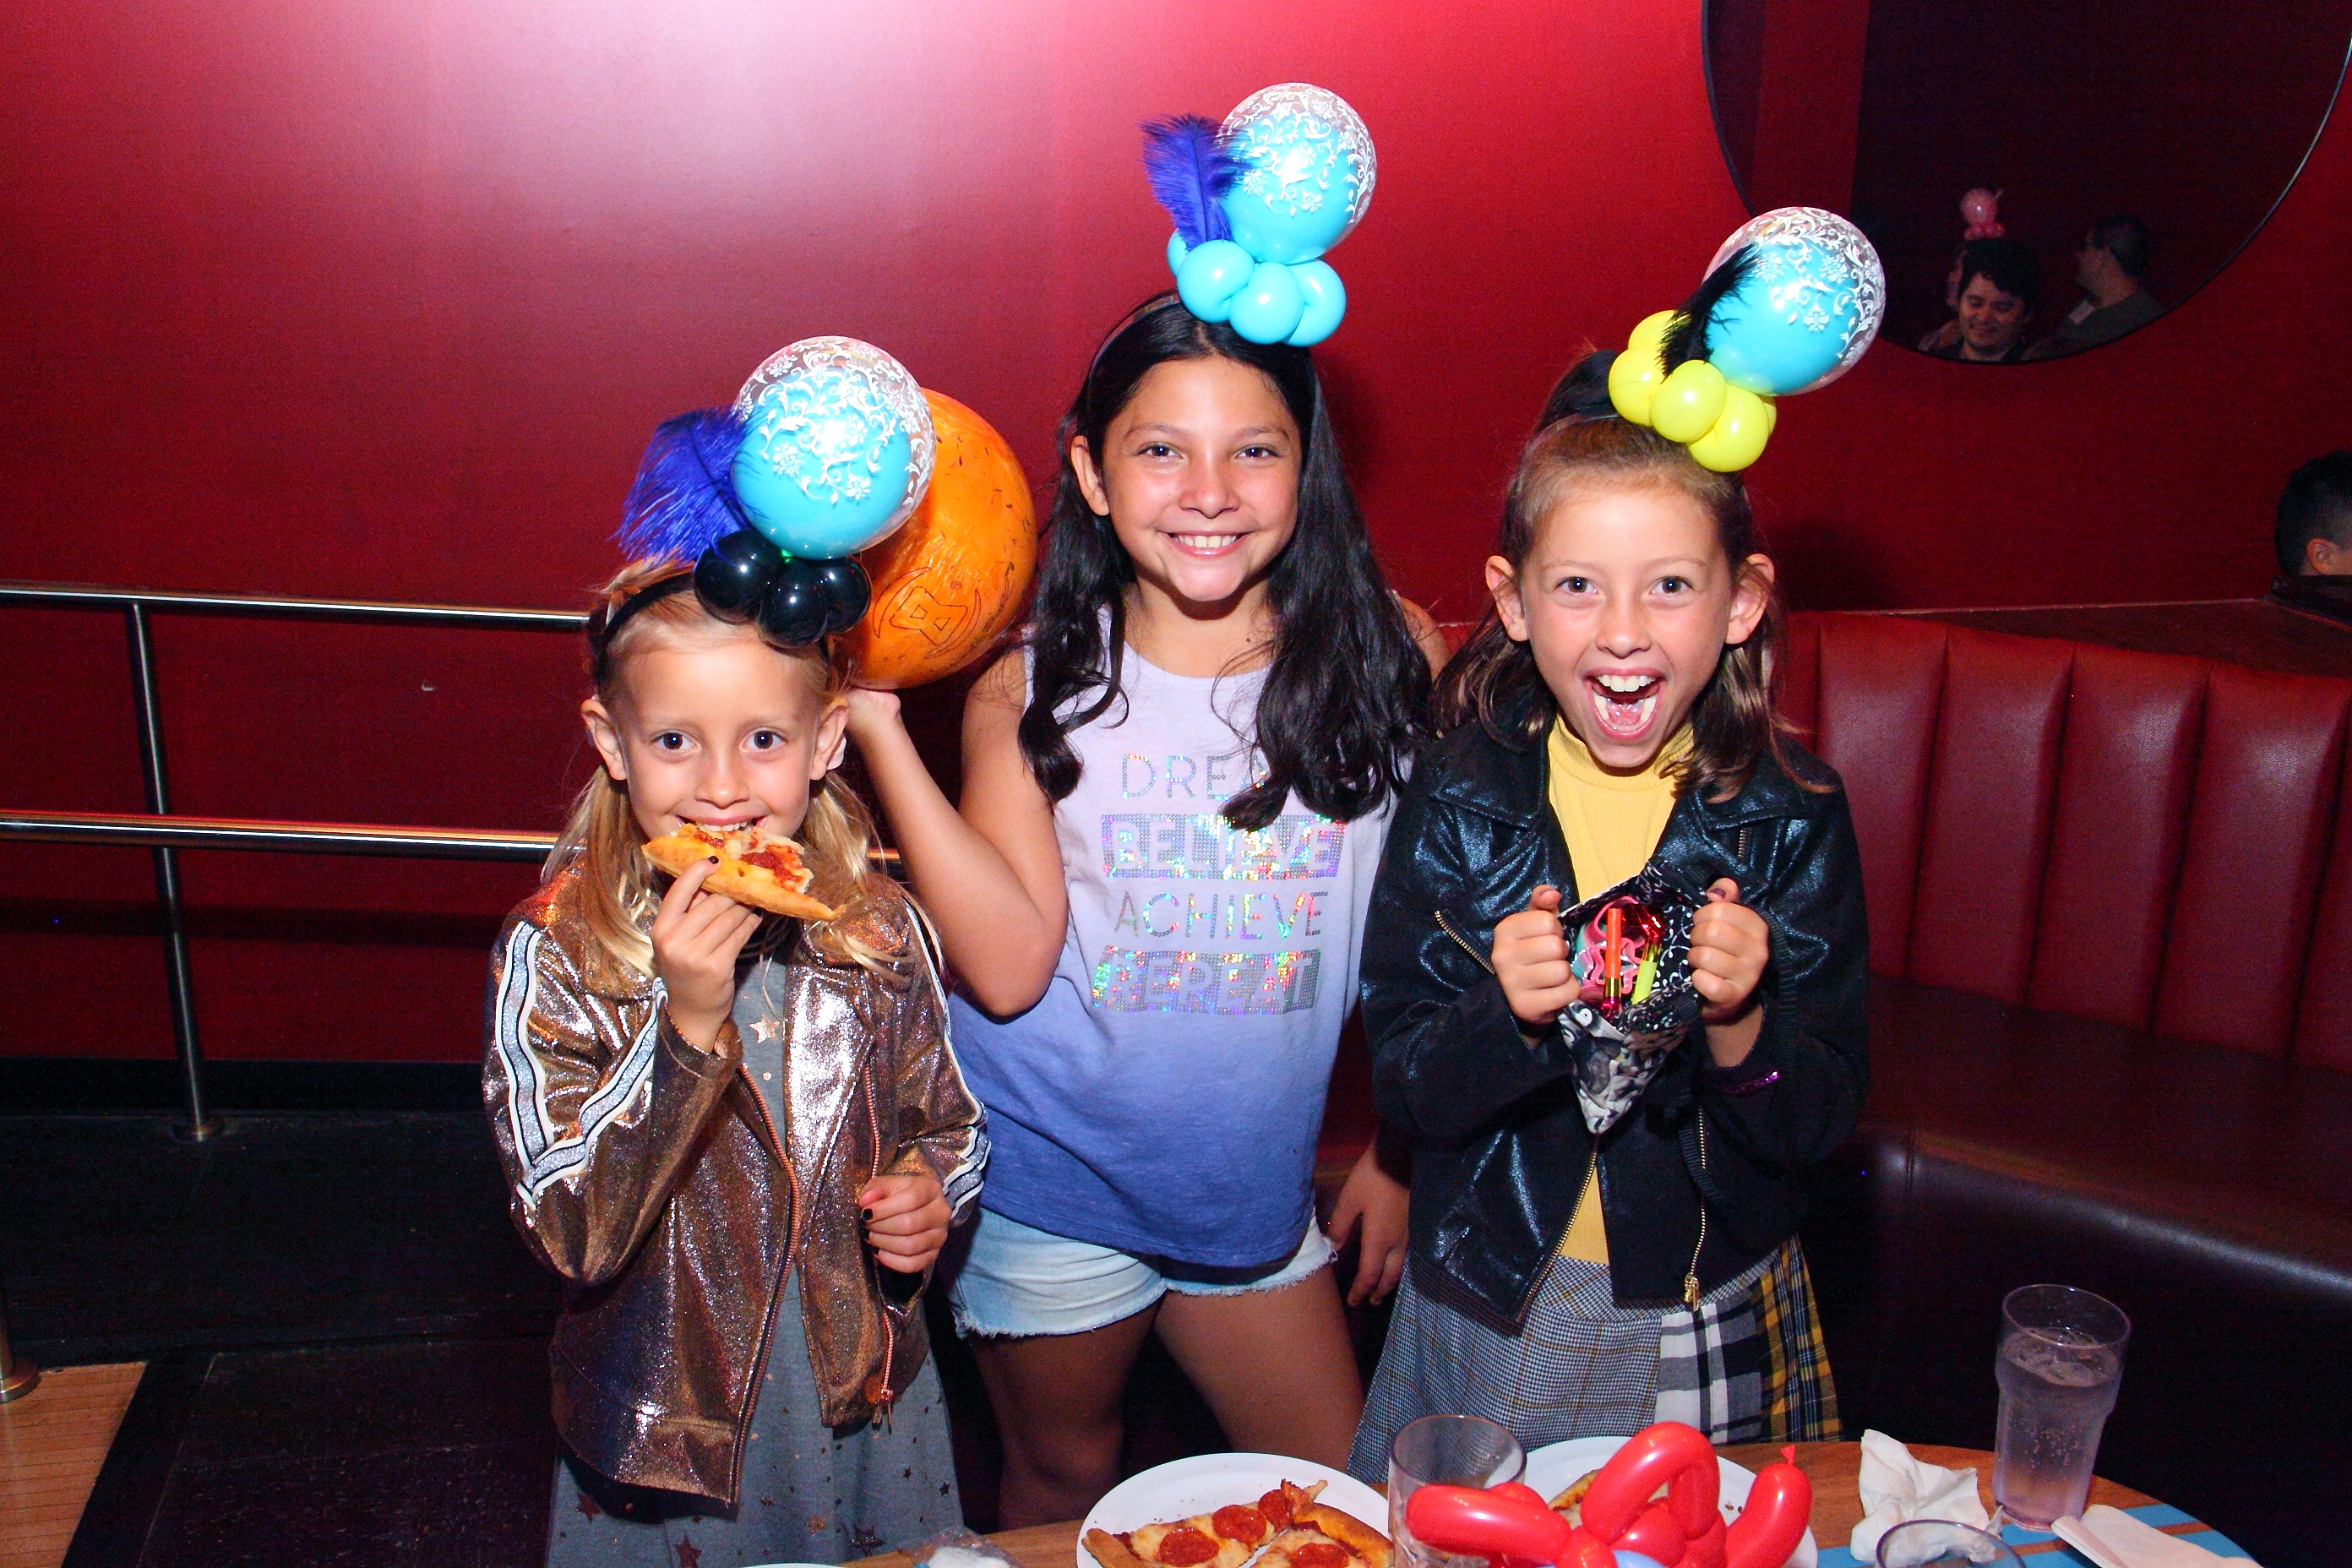 The kids staying entertained with balloon hats and pizza!